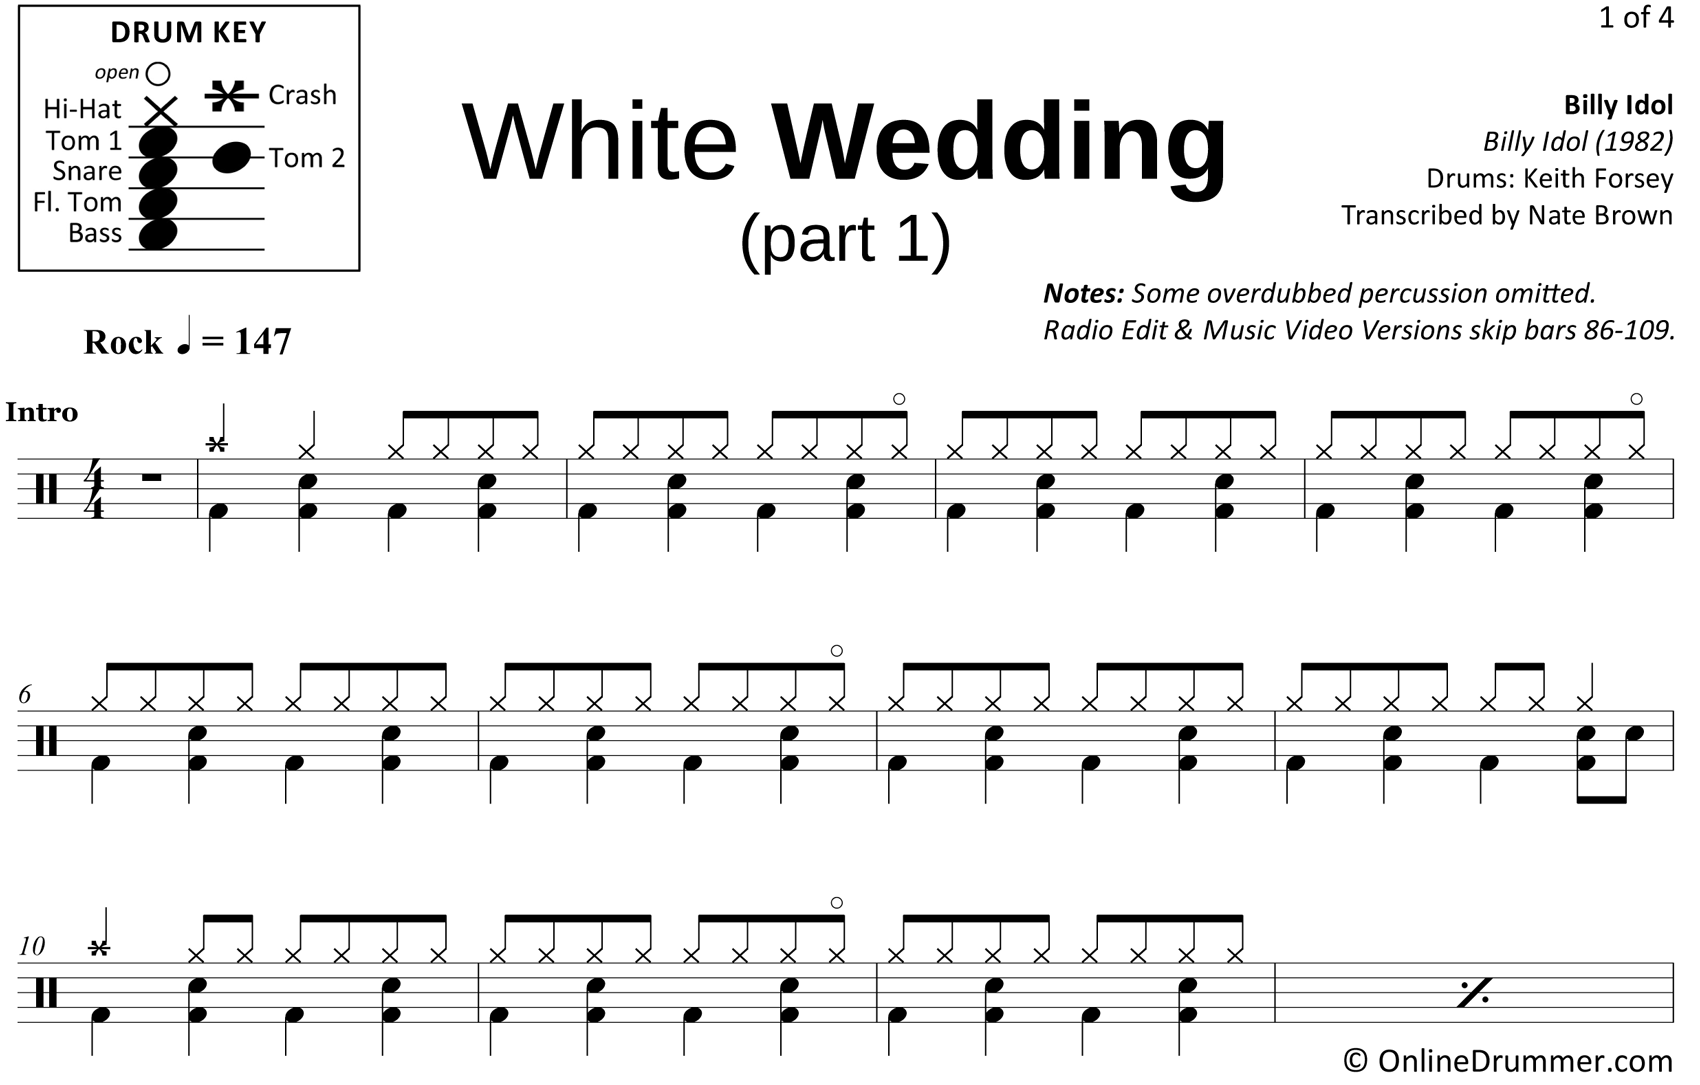 White Wedding (Part 1) - Billy Idol - Drum Sheet Music